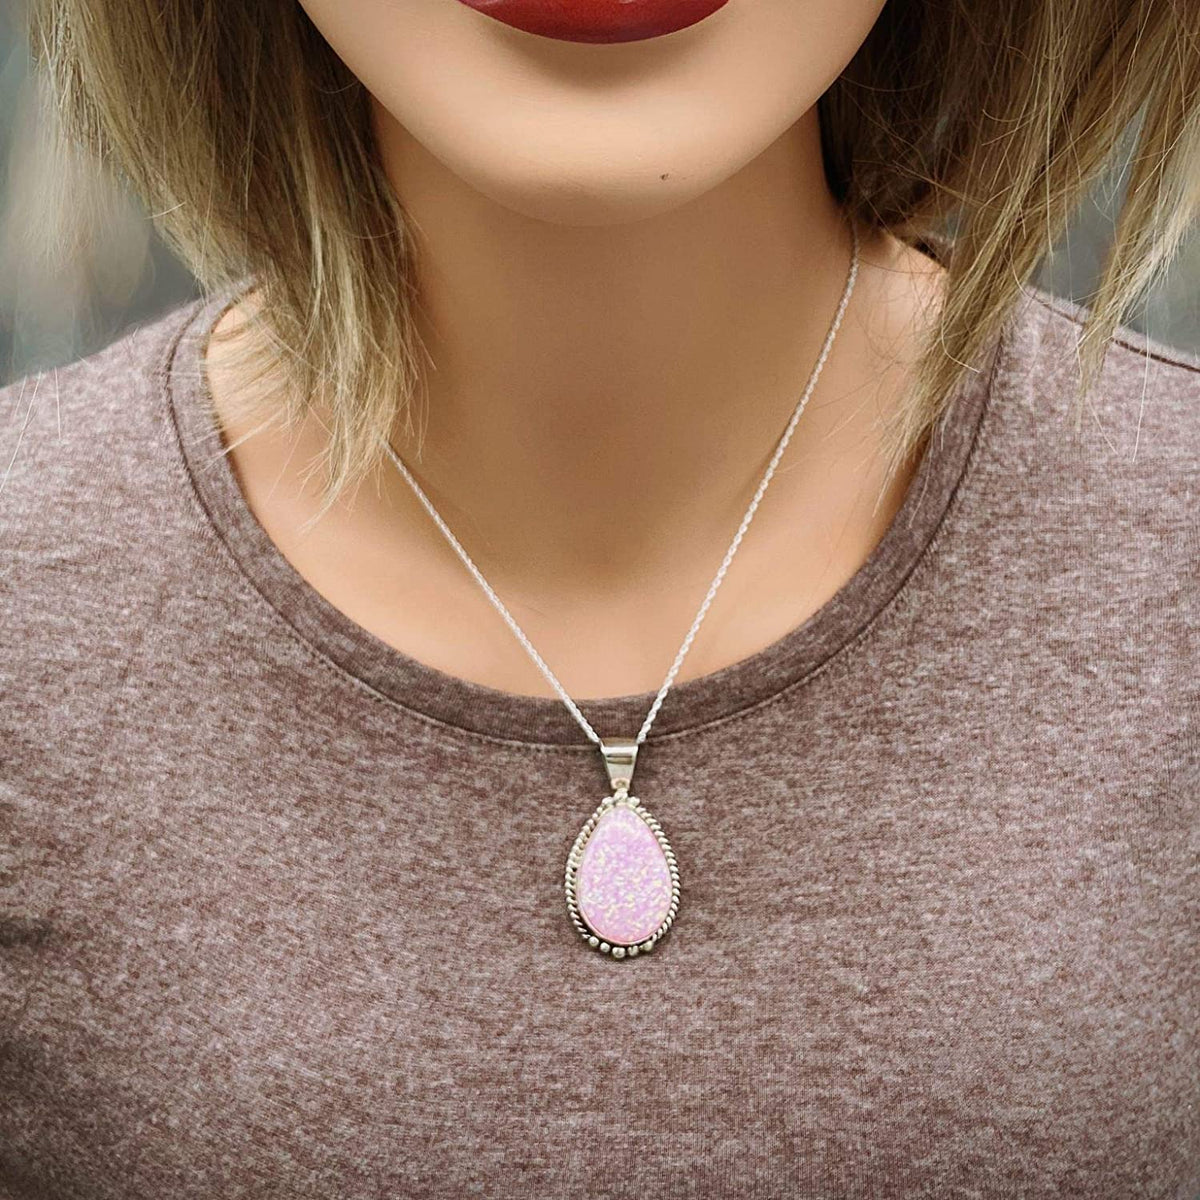 Pink Desert Opal Necklace, Pendant and Chain Set, 925 Sterling Silver, Native American USA Handmade, Nickle Free, Synthetic Pink Opal